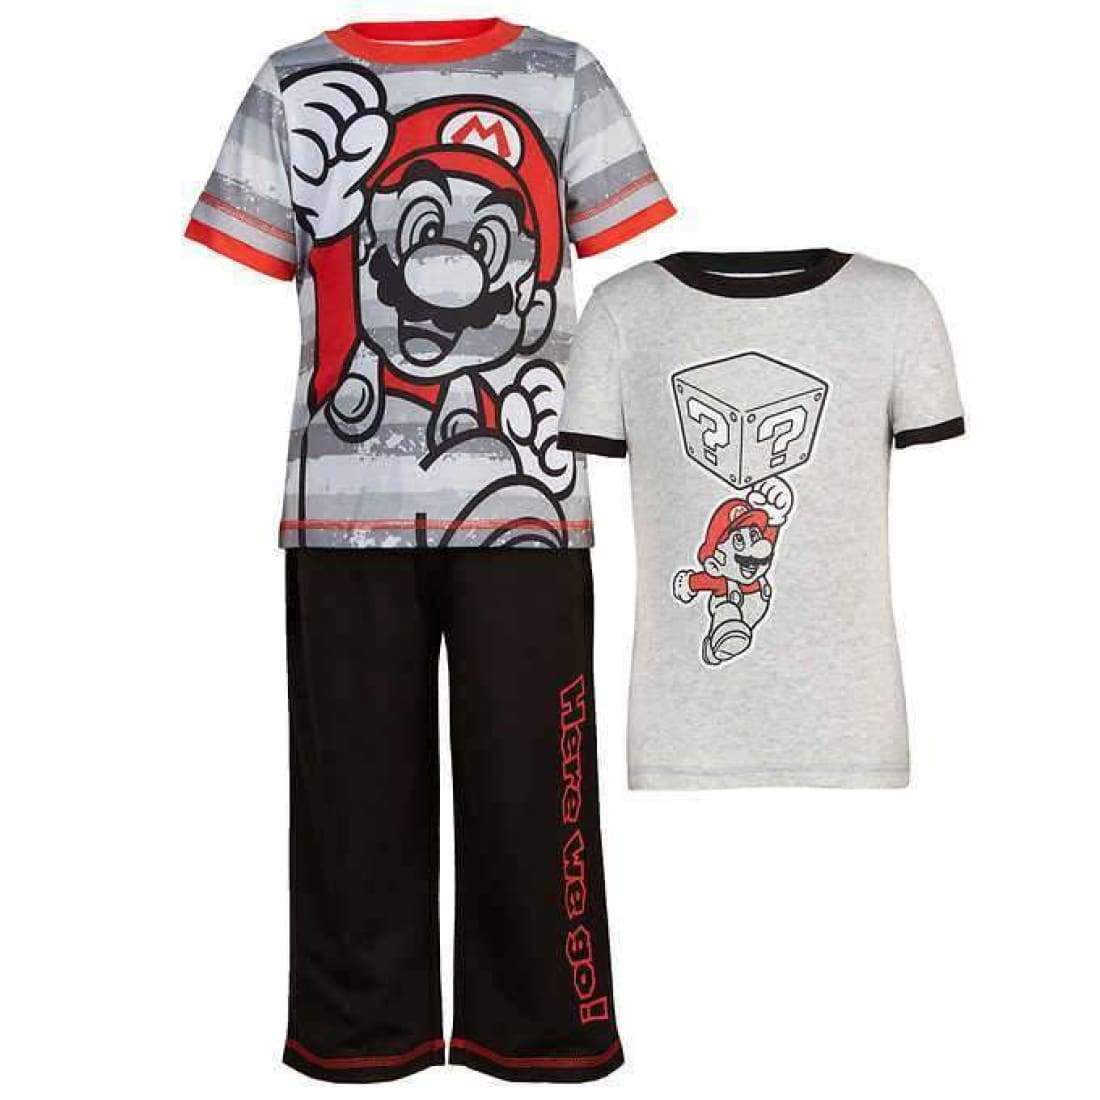 Character Boys 3-Piece Pajama Set 2T / Grey Sleepwear